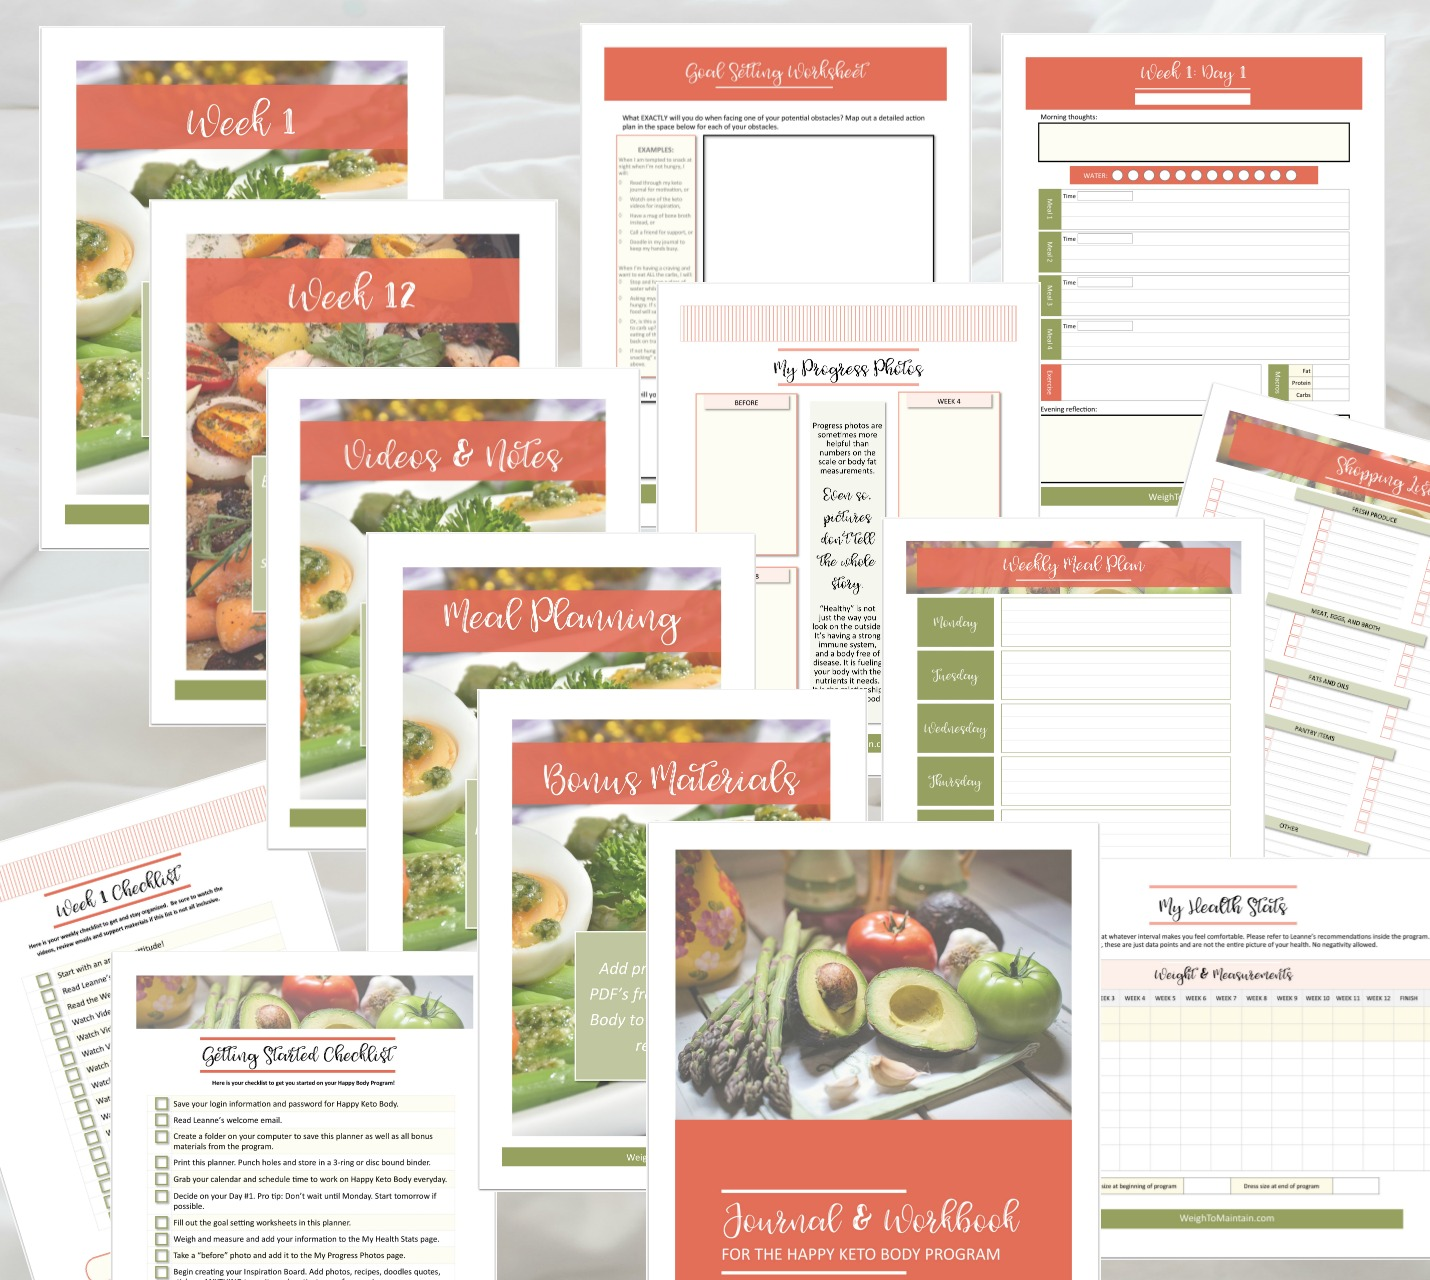 Free Happy Keto Body Printable Planner… - Purchase Happy Keto Body through the link below (or any of the links on this page) and I'll send you the 170 page printable Bonus Planner. Just email your receipt (dated January 10-17, 2019) to me, Jacqui@PlanAHealthyLife.com!